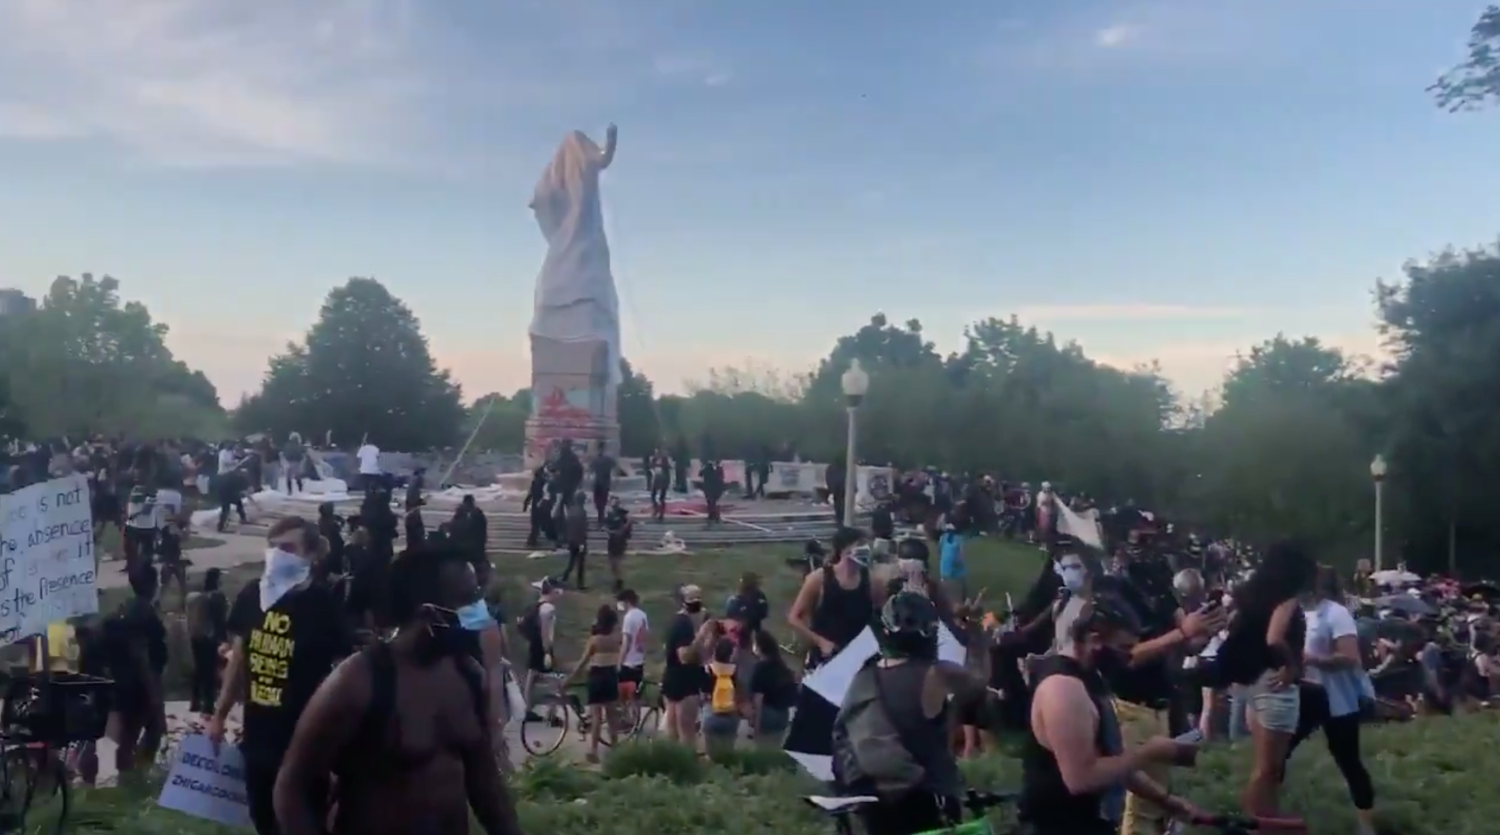 Protesters Try To Tear Down Columbus Statue In Chicago's Grant Park – CBS Chicago